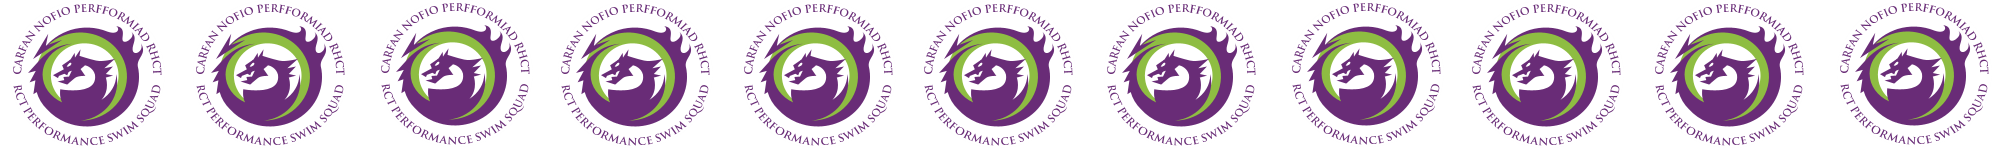 RCT Performance Swim Squad South Wales